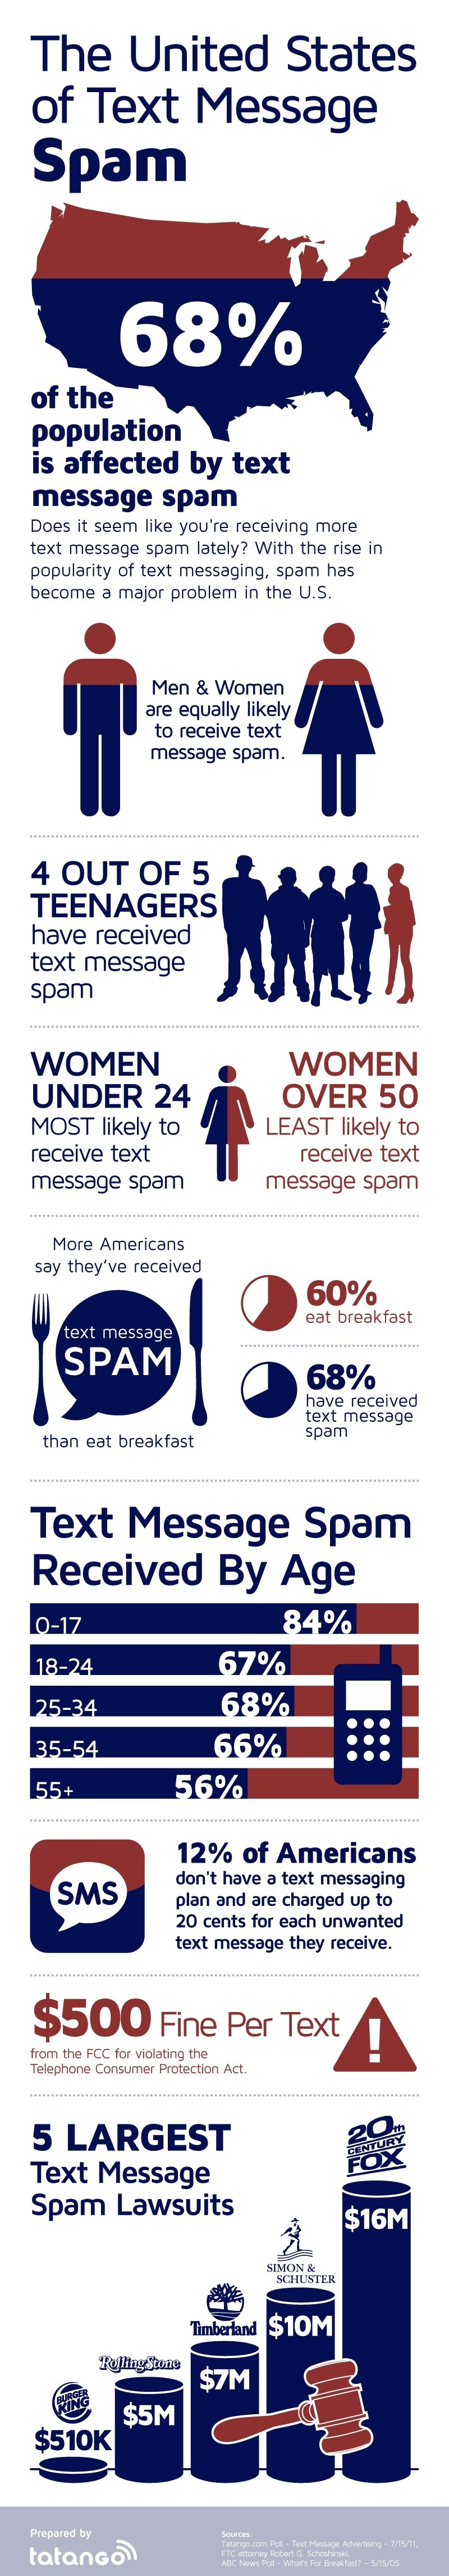 Text Message Spam Infographic - Tatango